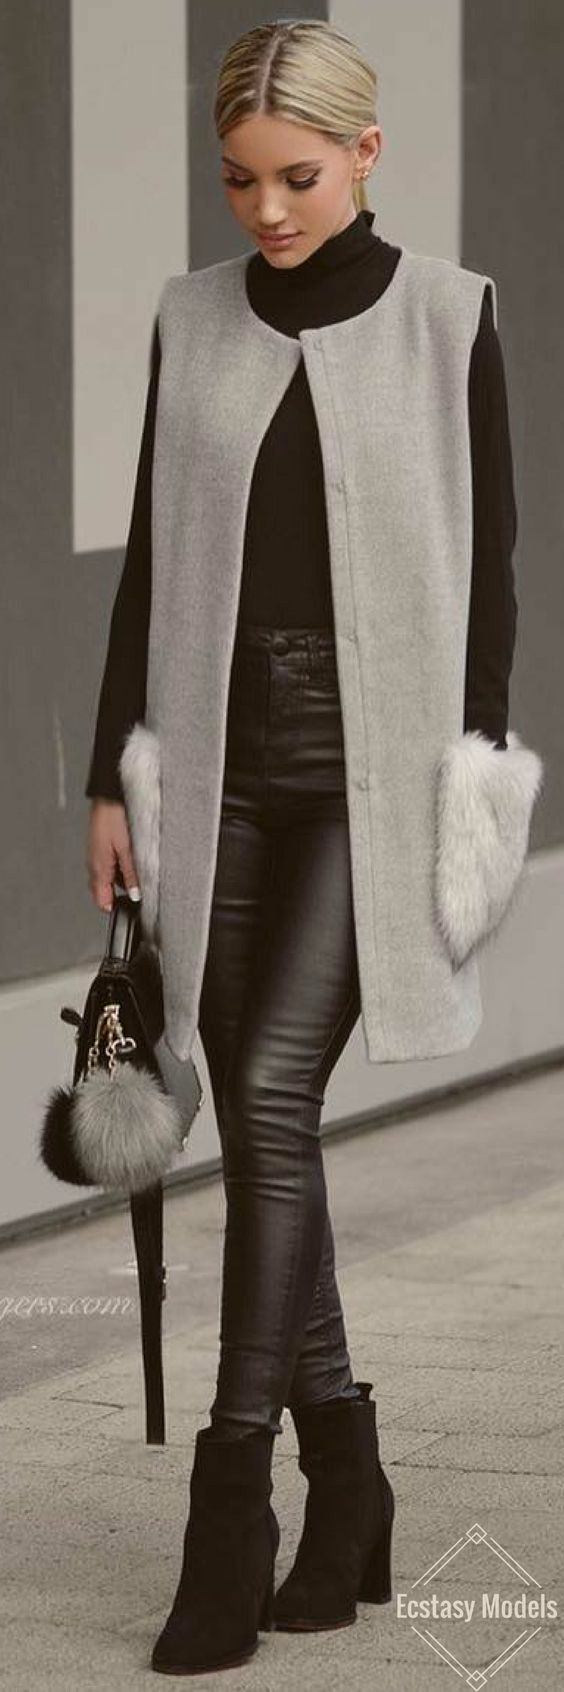 Amazing fall outfit - wear your clothes with style - Miladies.net